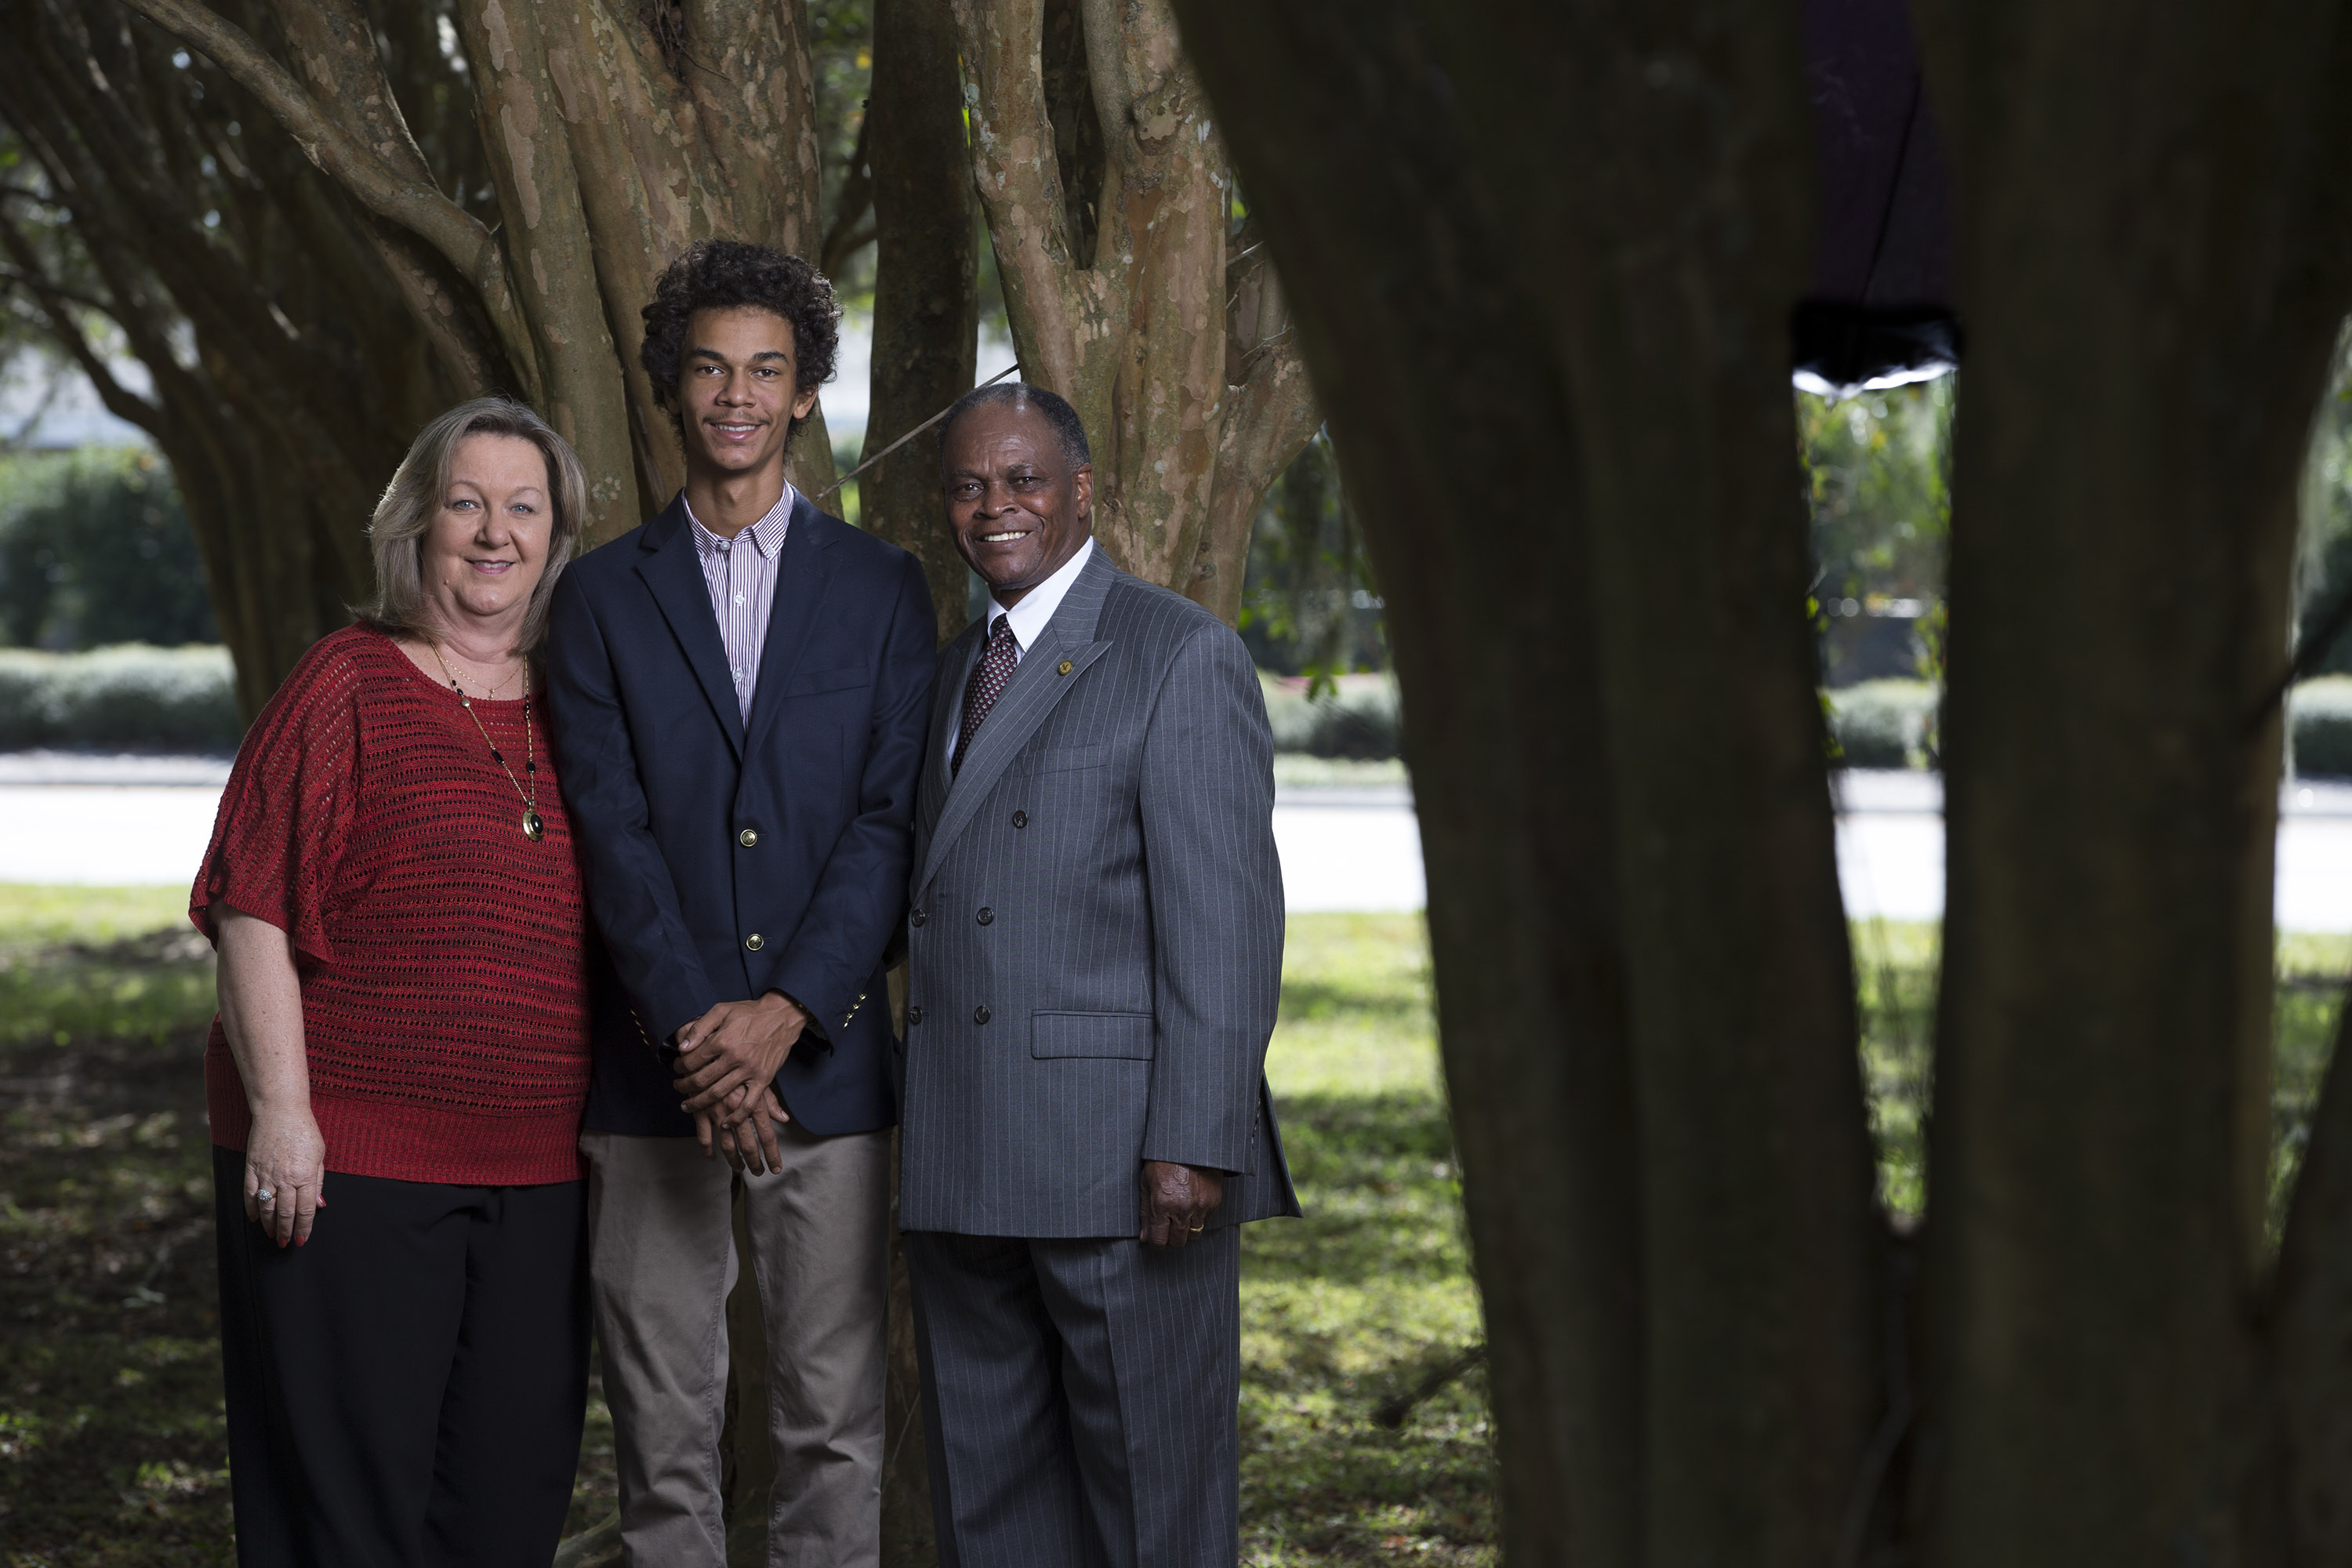 A family portrait of Libby Maxwell, Billy Maxwell and son Zach Maxwell in Ocoee, Fla. The Ocoee Massacre in 1920 resulted in African Americans being forced out of Ocoee until the 1970's.